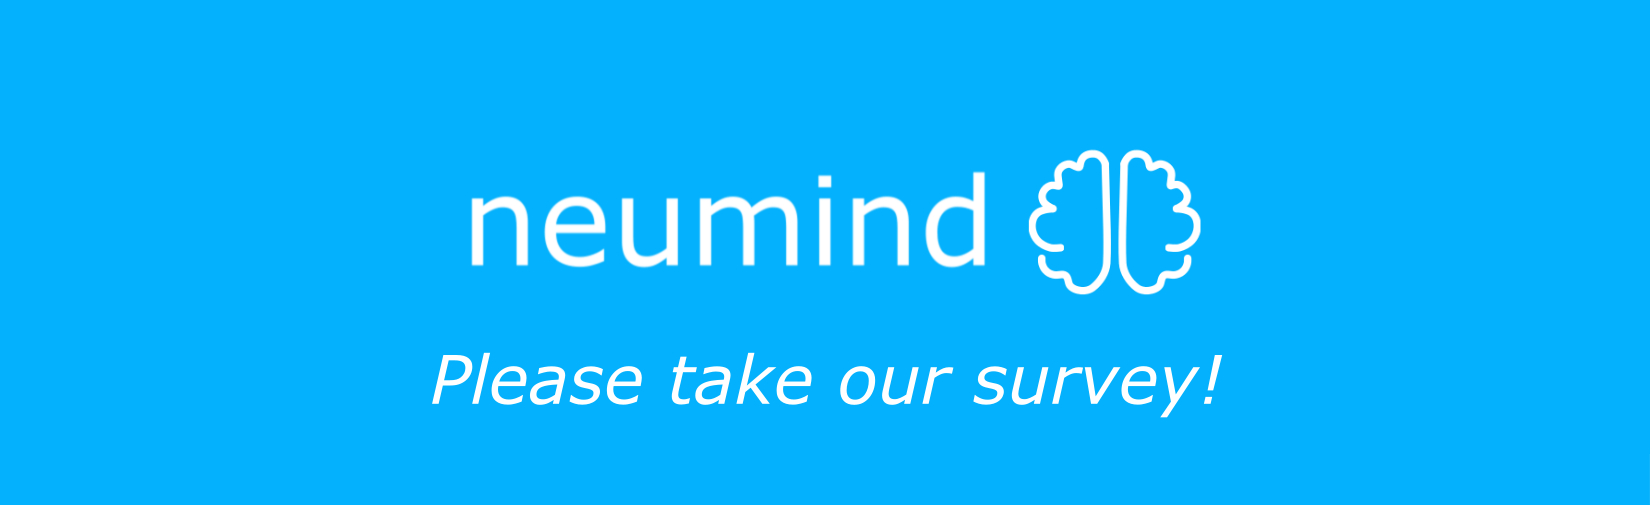 Help us learn more about dementia whilst raising money for Dementia Research